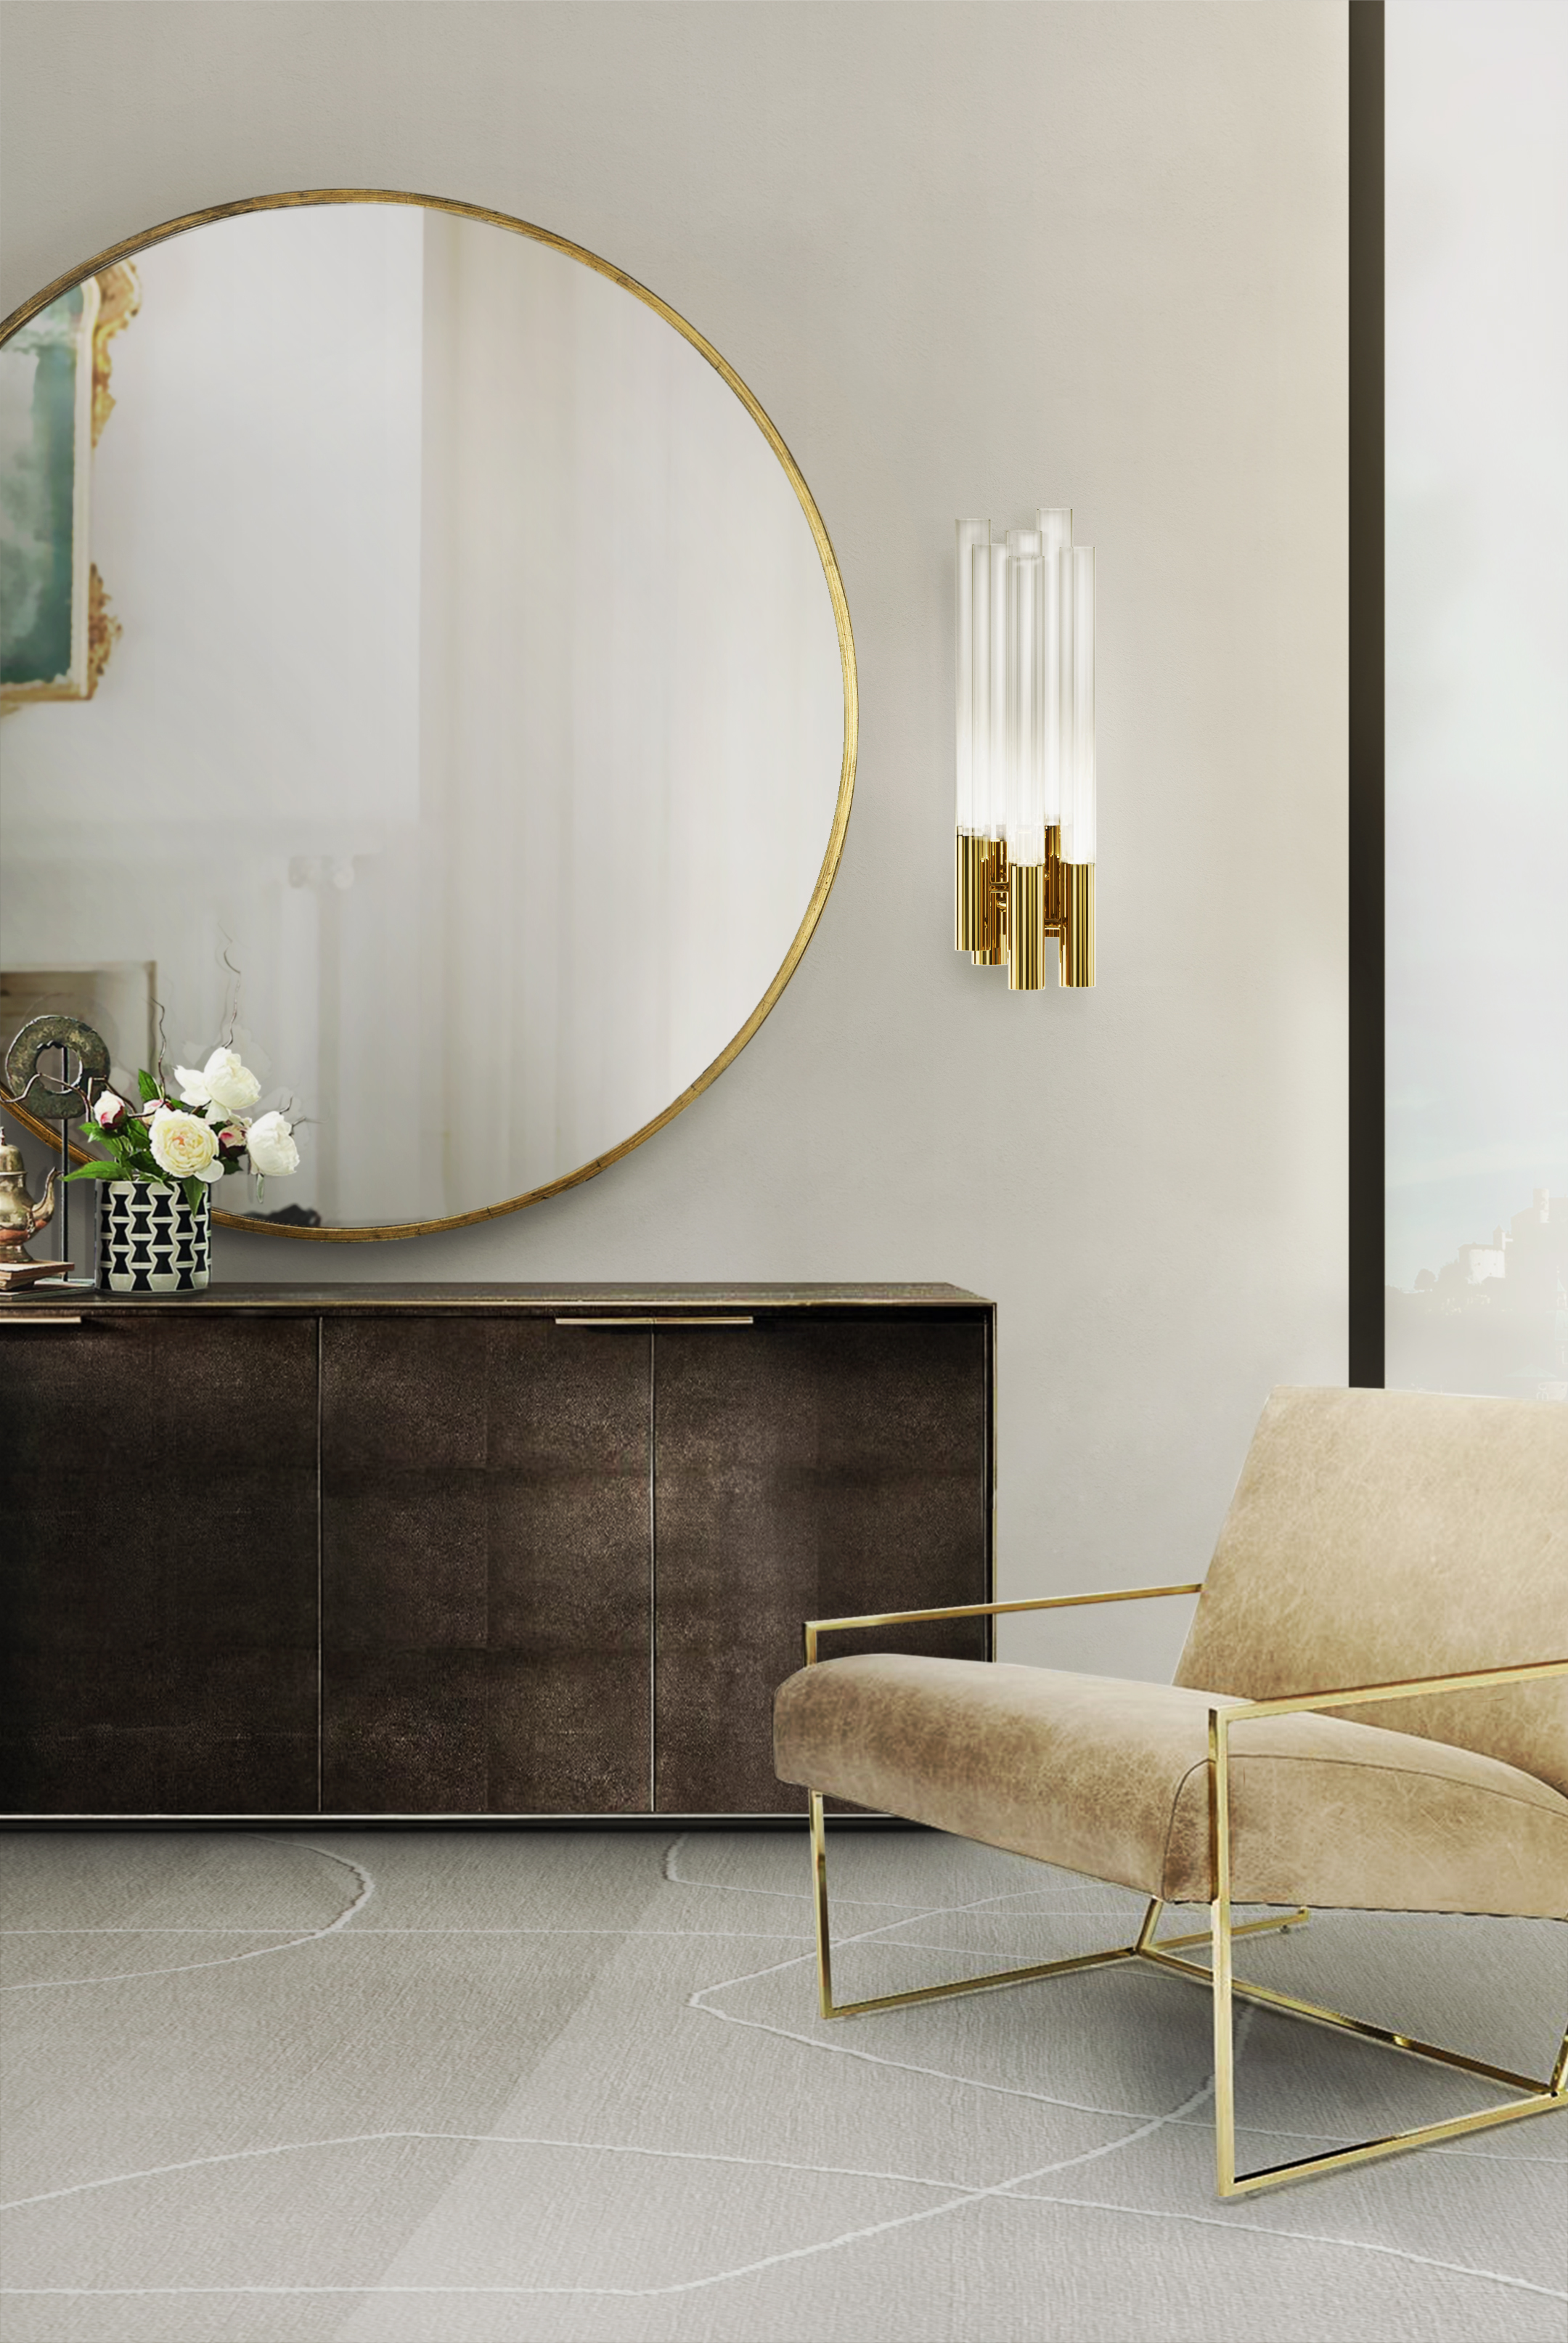 burj Wall ambiente wall lamp Create a glamorous decor with Luxxu's wall lamps burj Wall ambiente